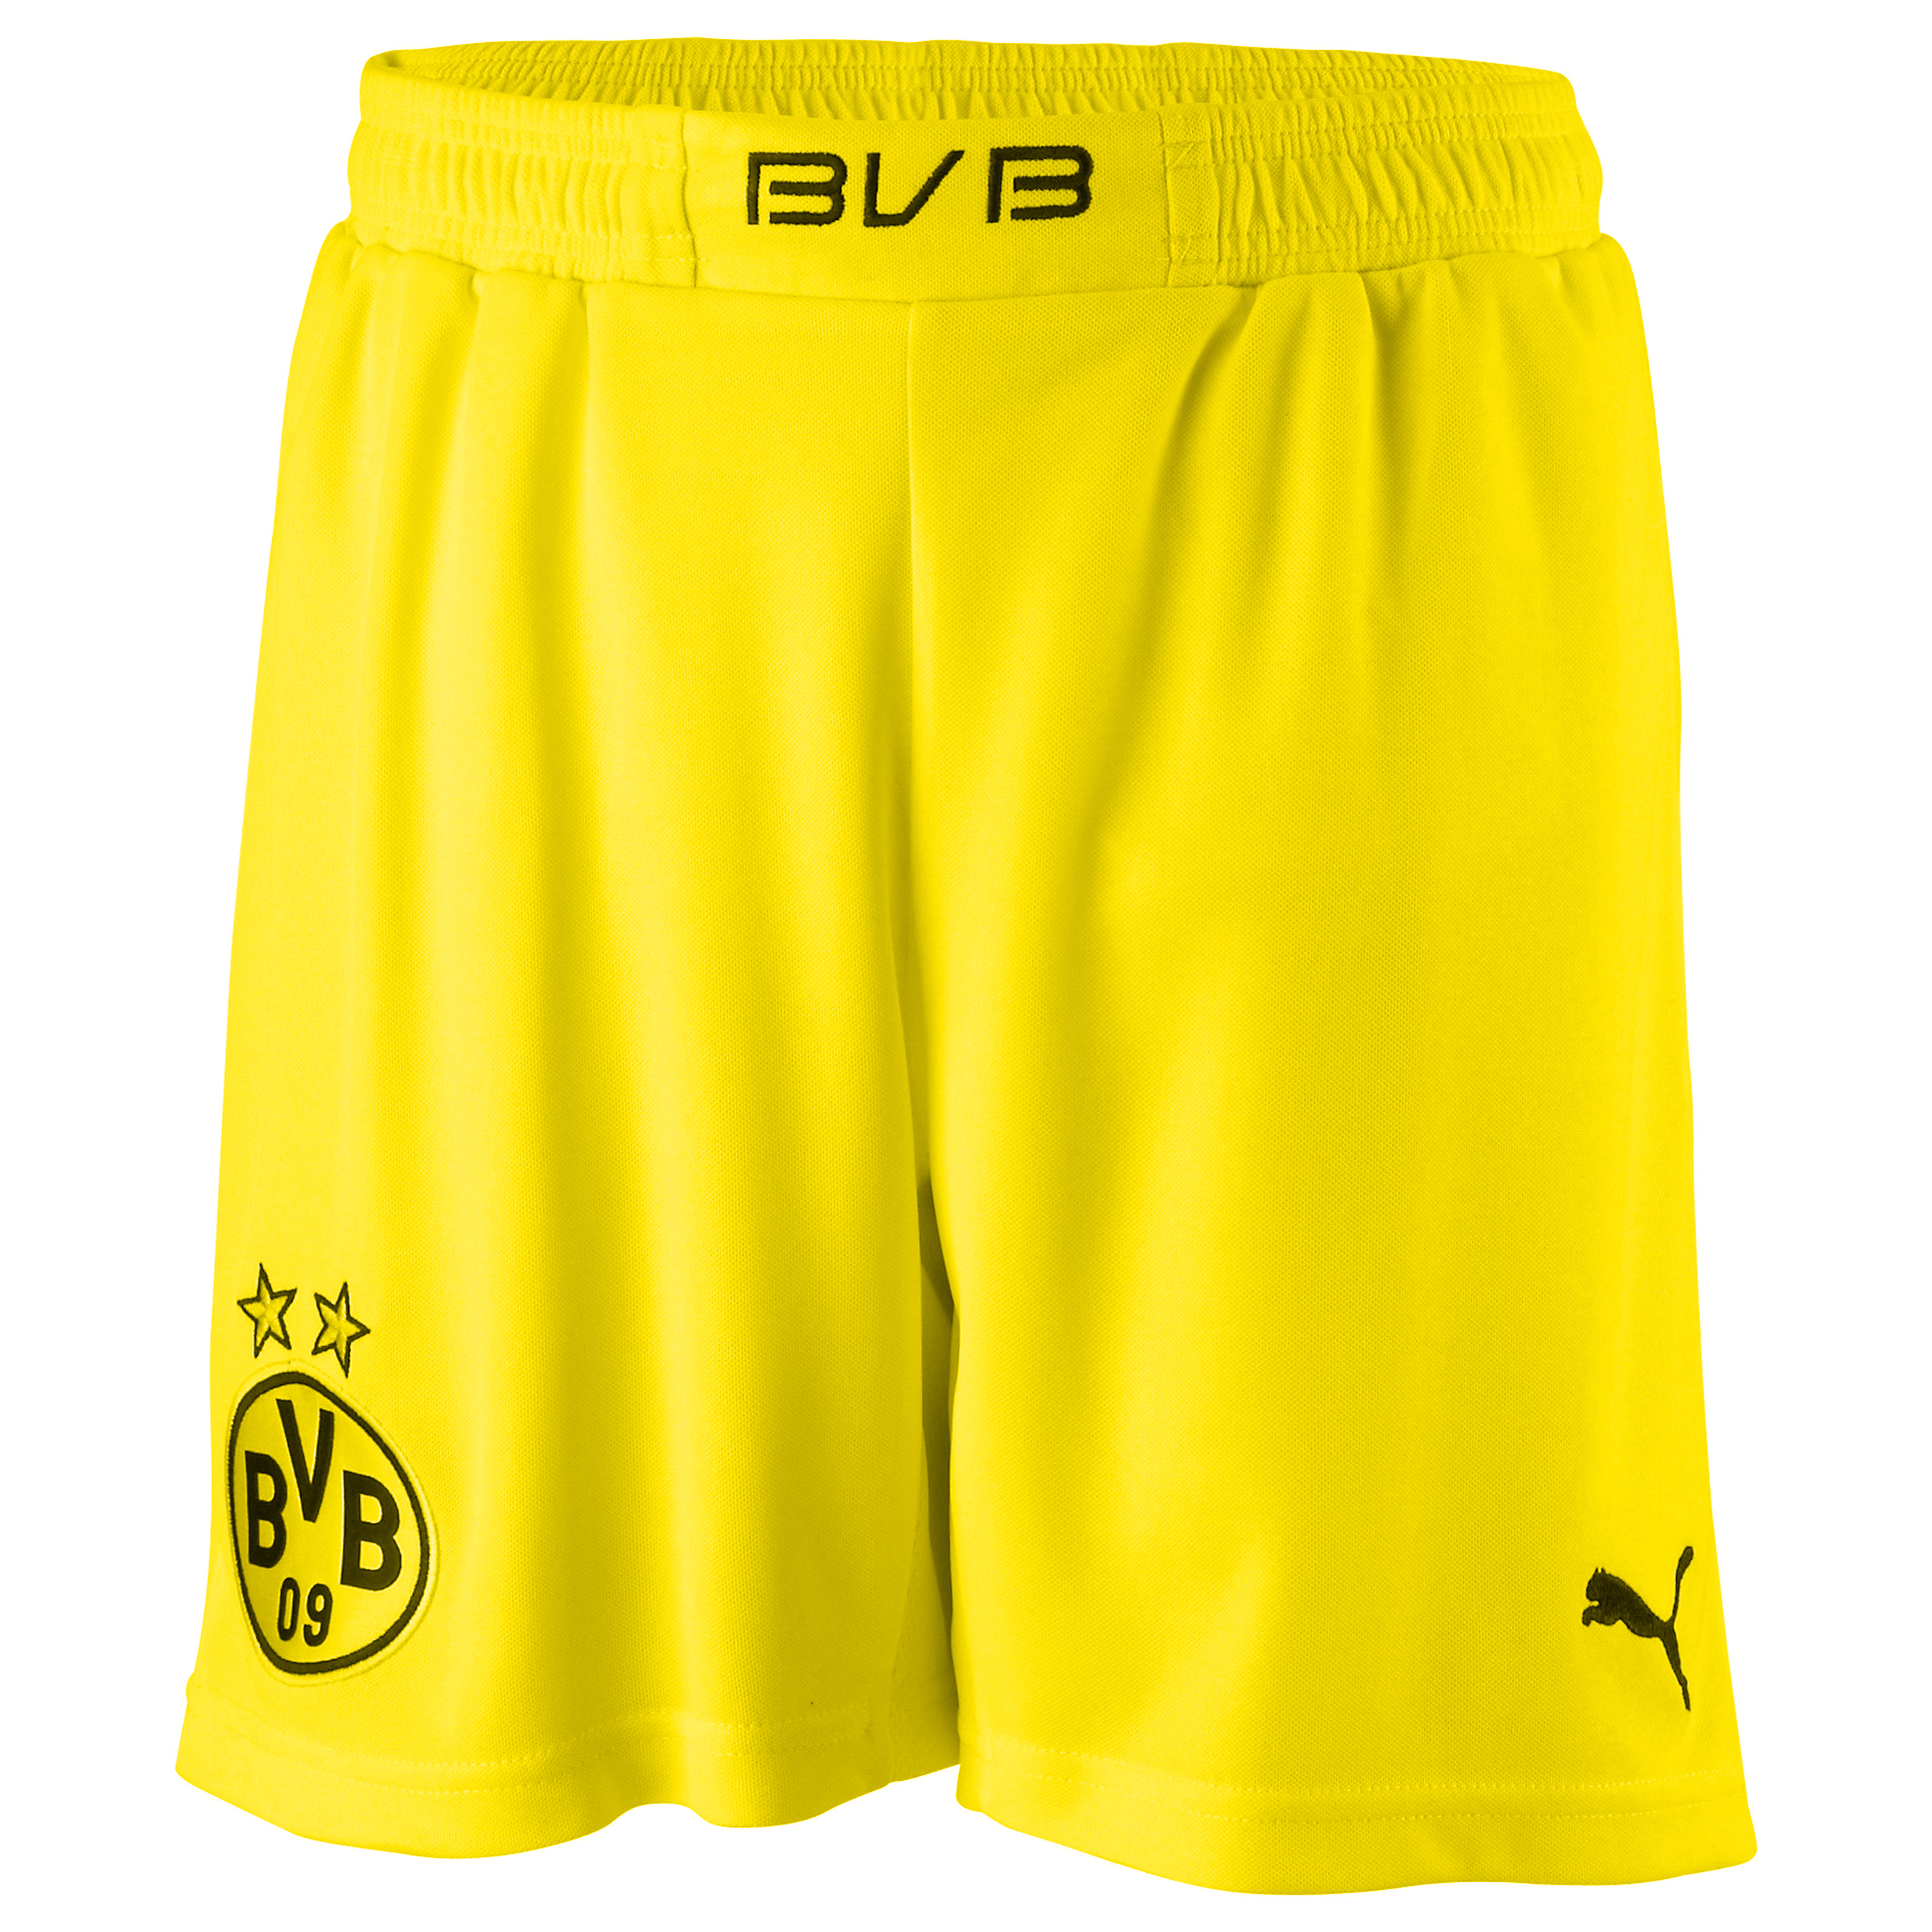 BVB Home Change Shorts 2013/14 - Youths